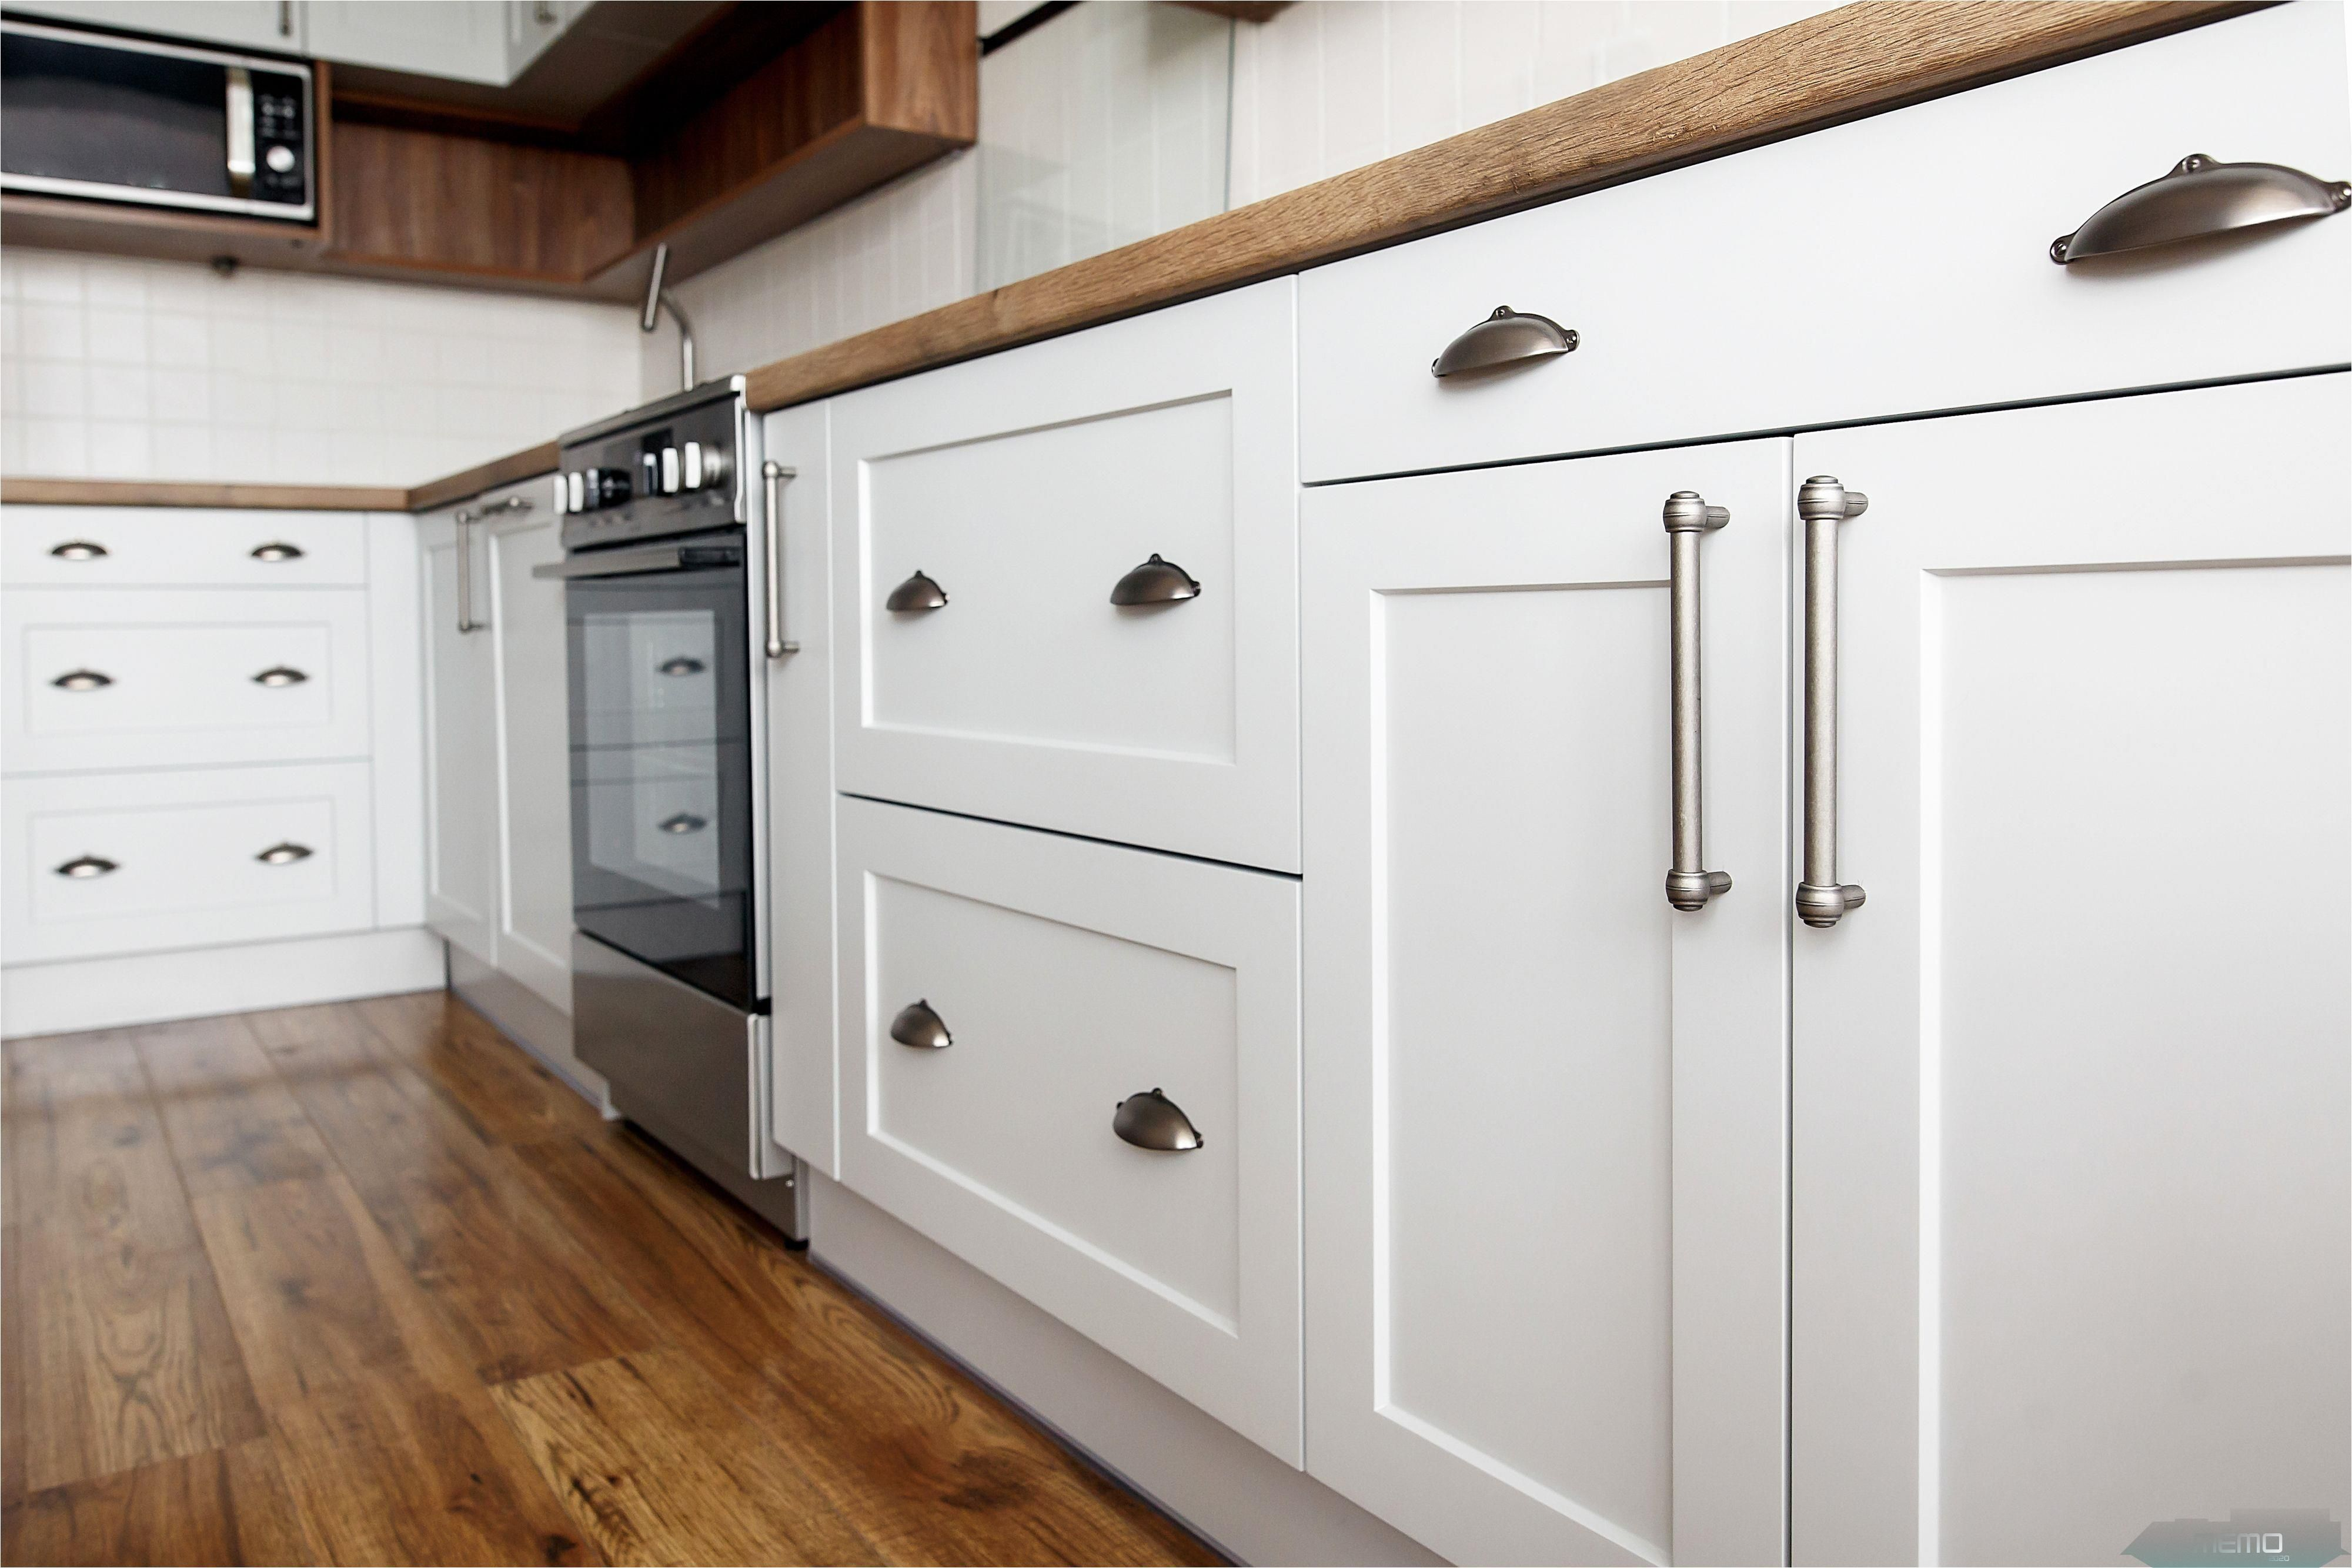 Nov 7 2019 The Best Way To Clean Painted Cabinets Is To Use A Gentle Cleanser Update Kitchen Cabinets Types Of Kitchen Cabinets Paint Cabinets White